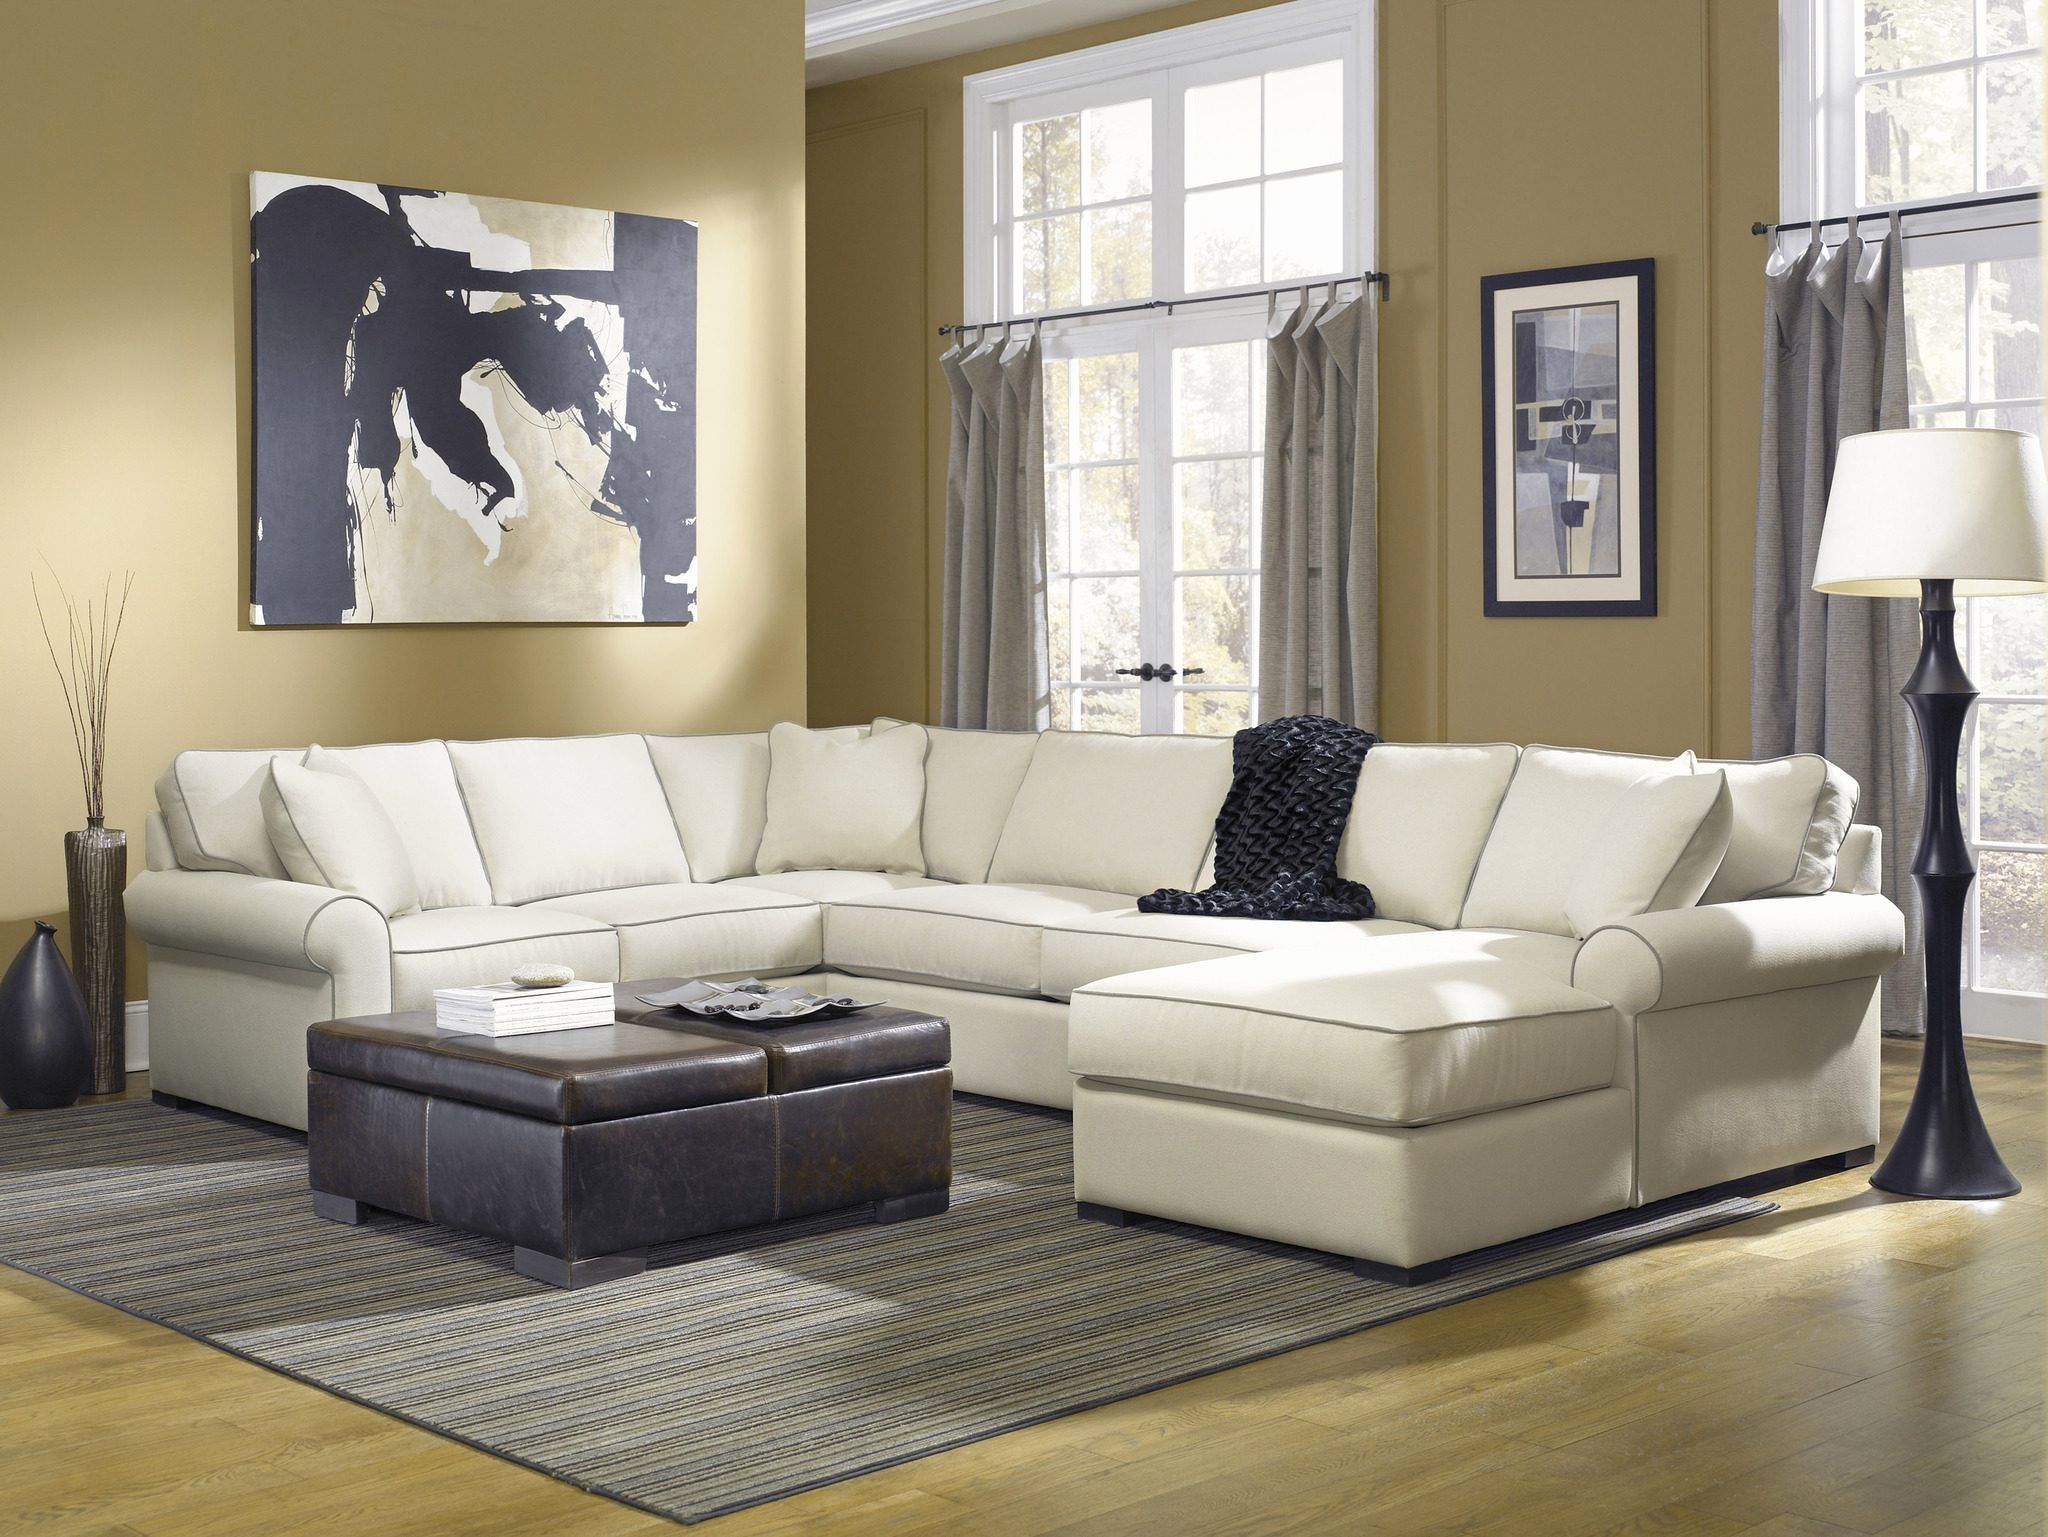 Best Of Down Filled Sectional Sofa Pictures Down Filled Sectional Sofa Best Of Furniture Robert Micha Custom Sectional Sofa Sectional Sofa Family Room Makeover